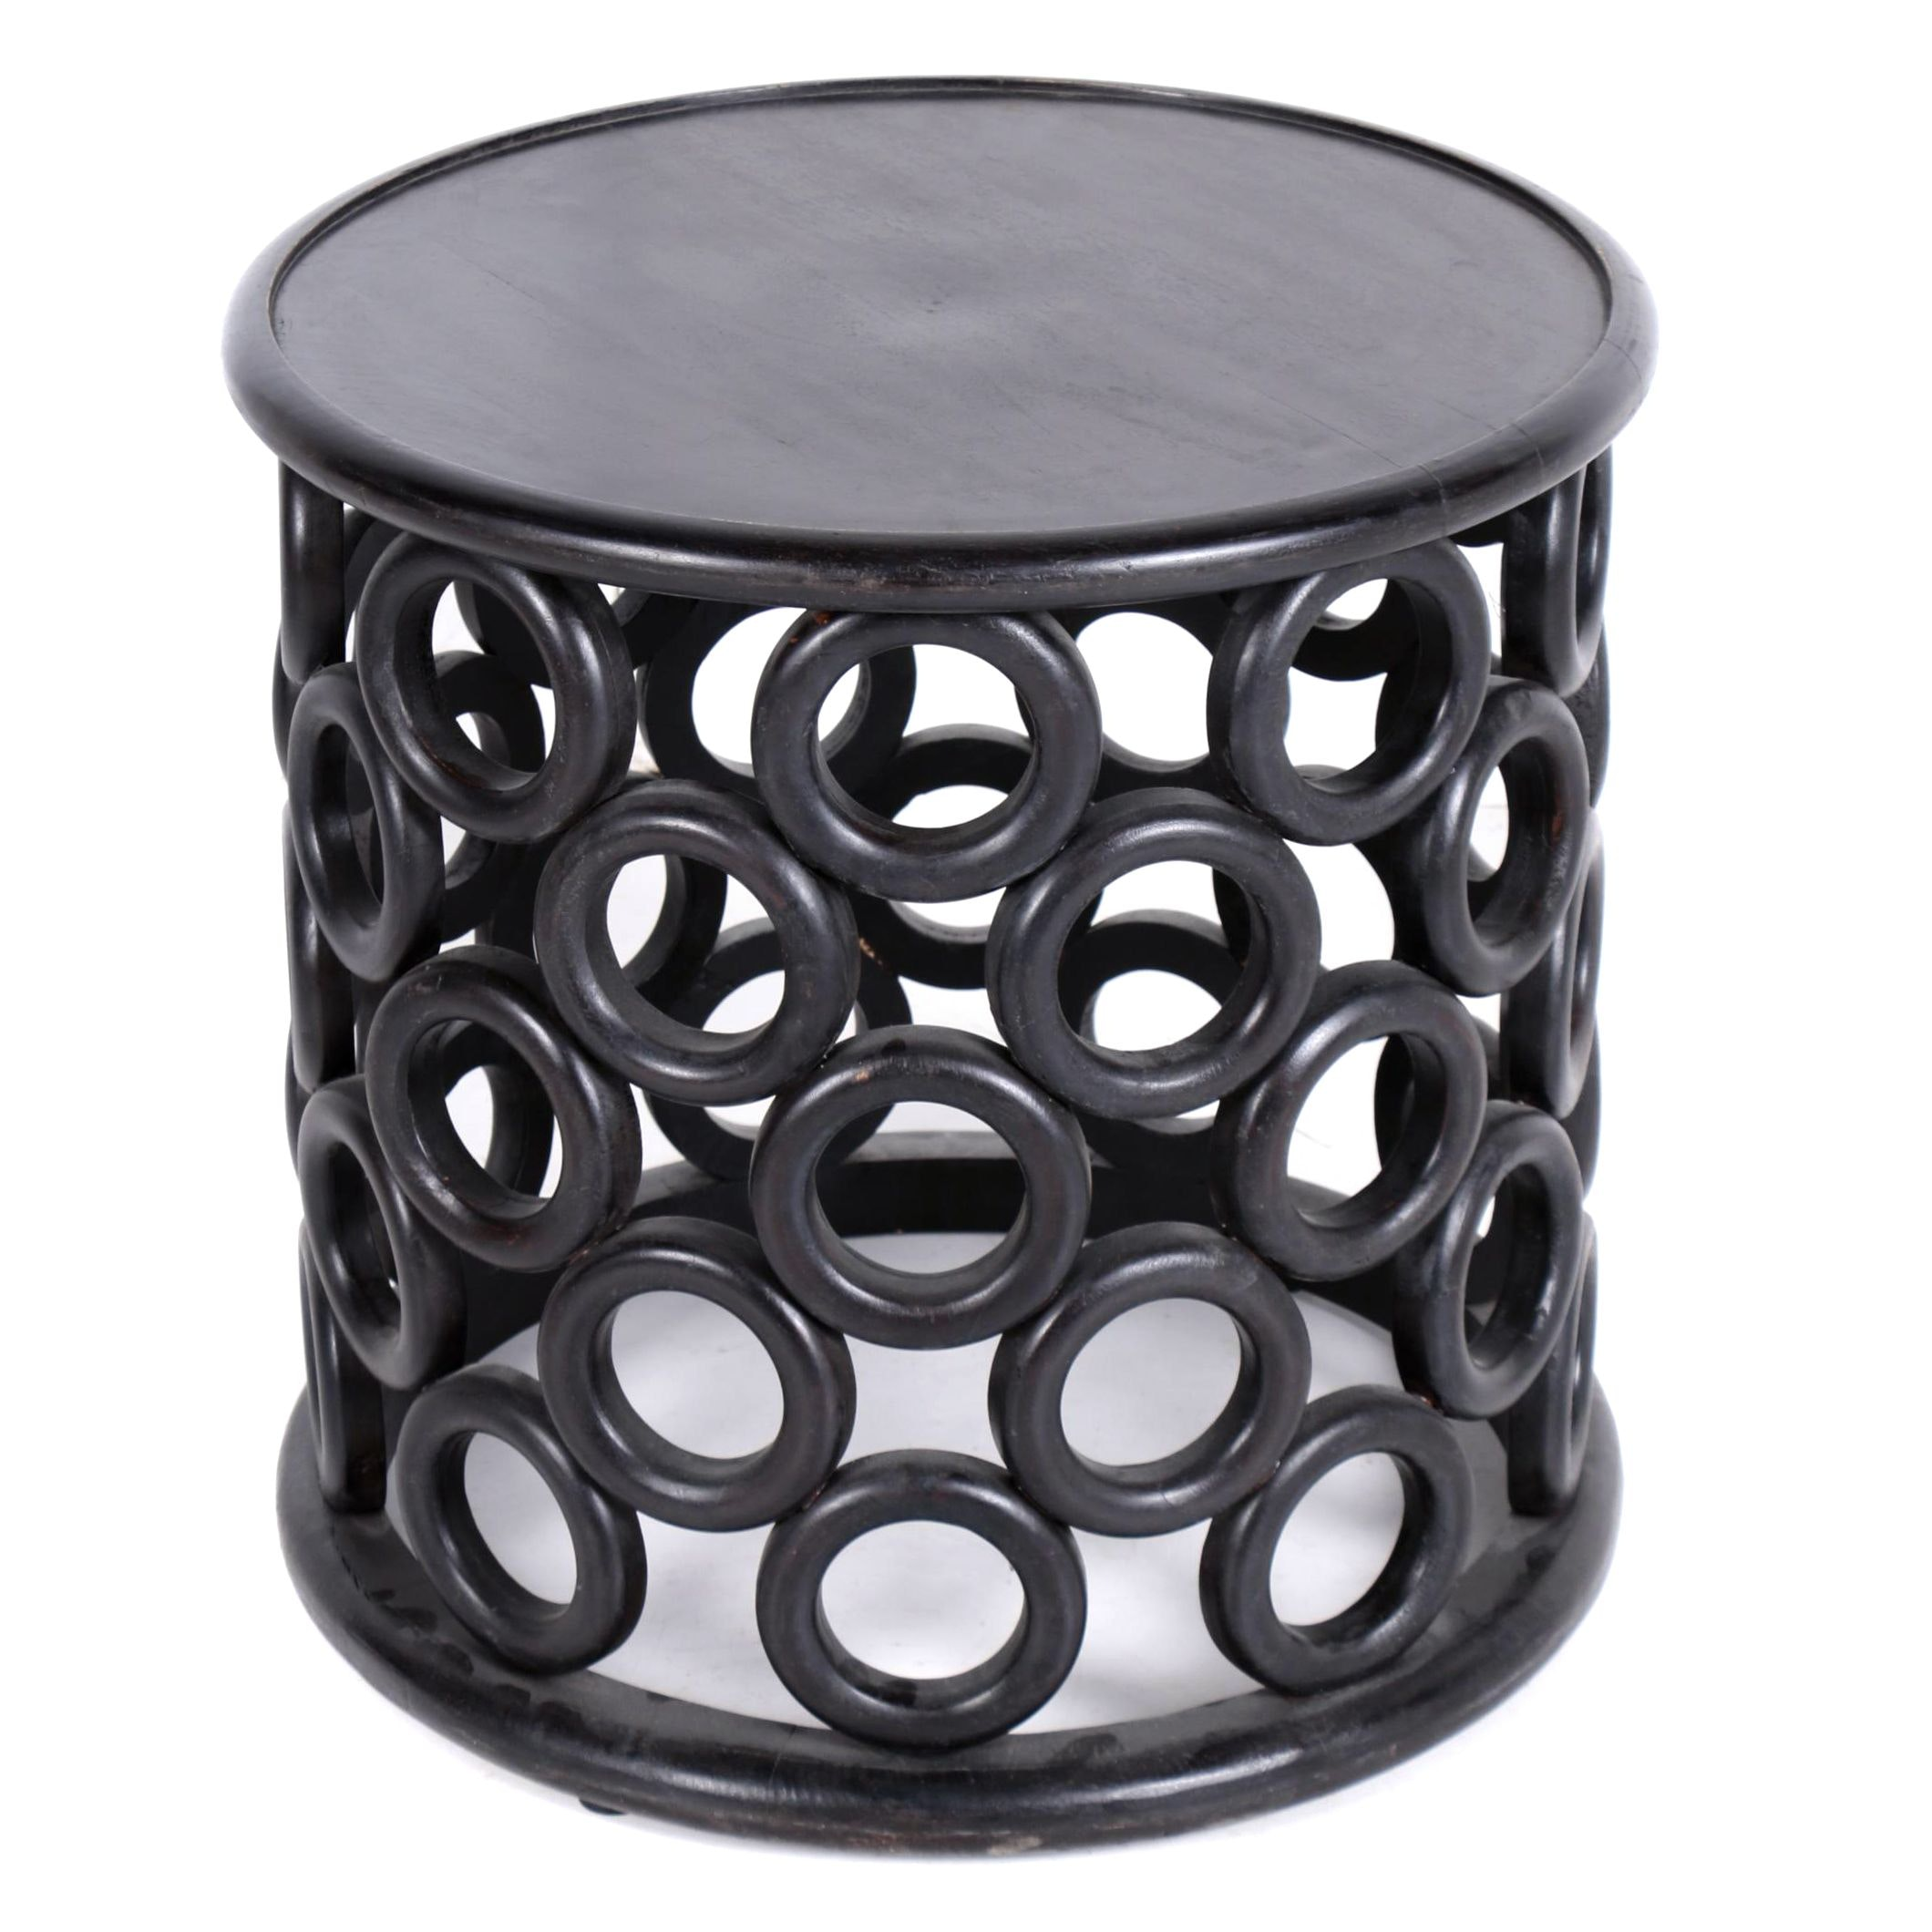 Wooden Ring Side Table with Ebonized Finish